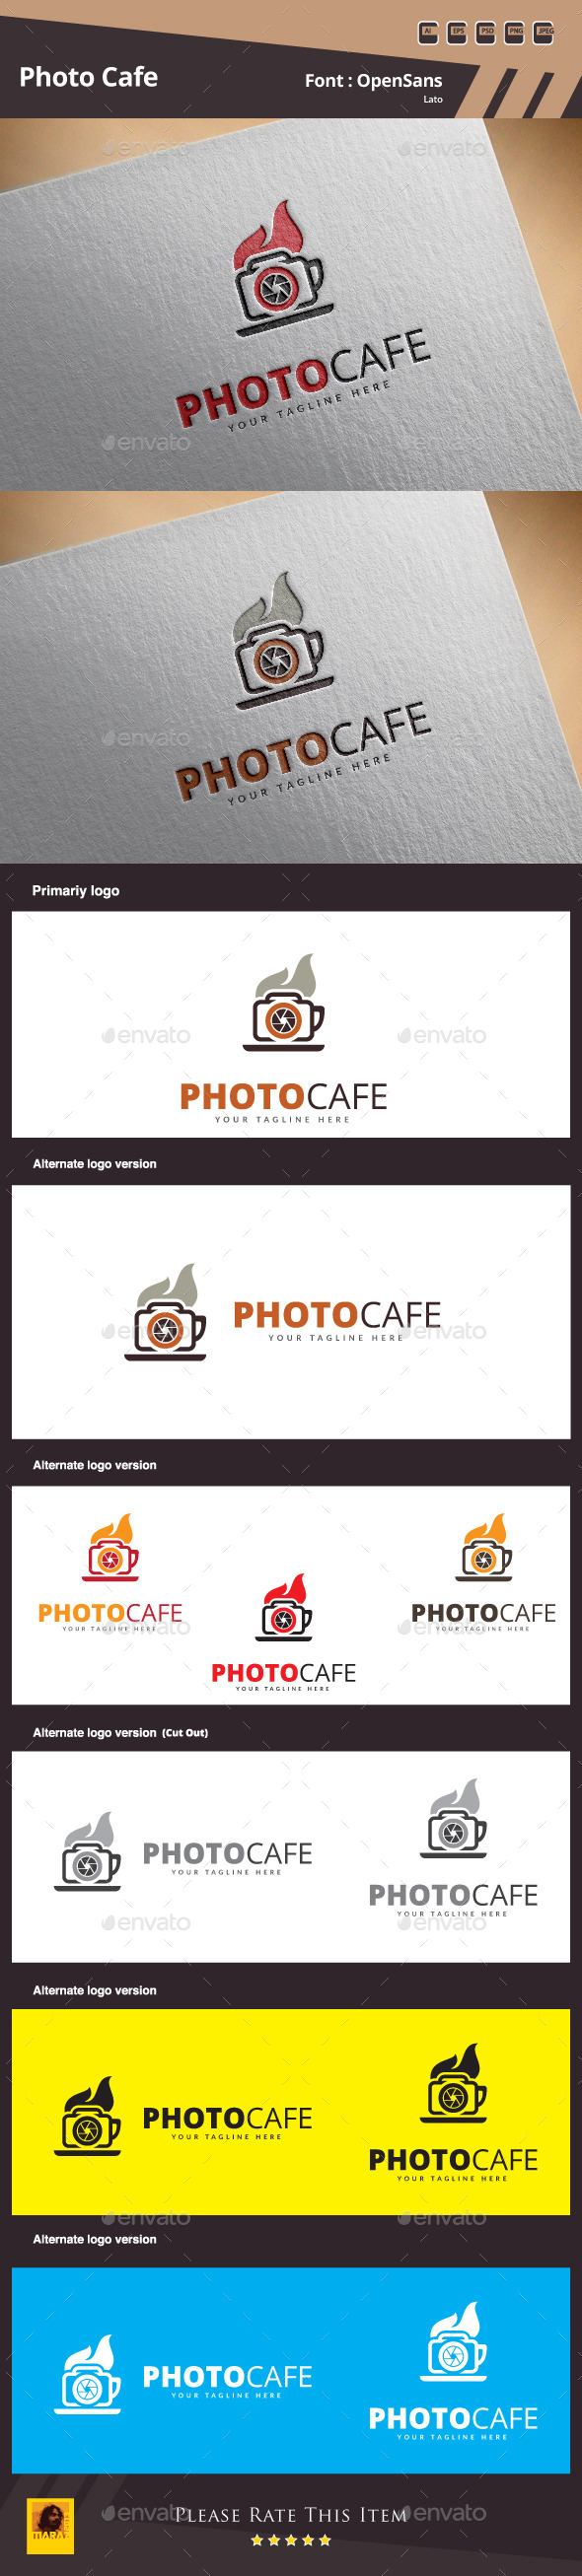 GraphicRiver Photo Cafe Logo Template 11170684